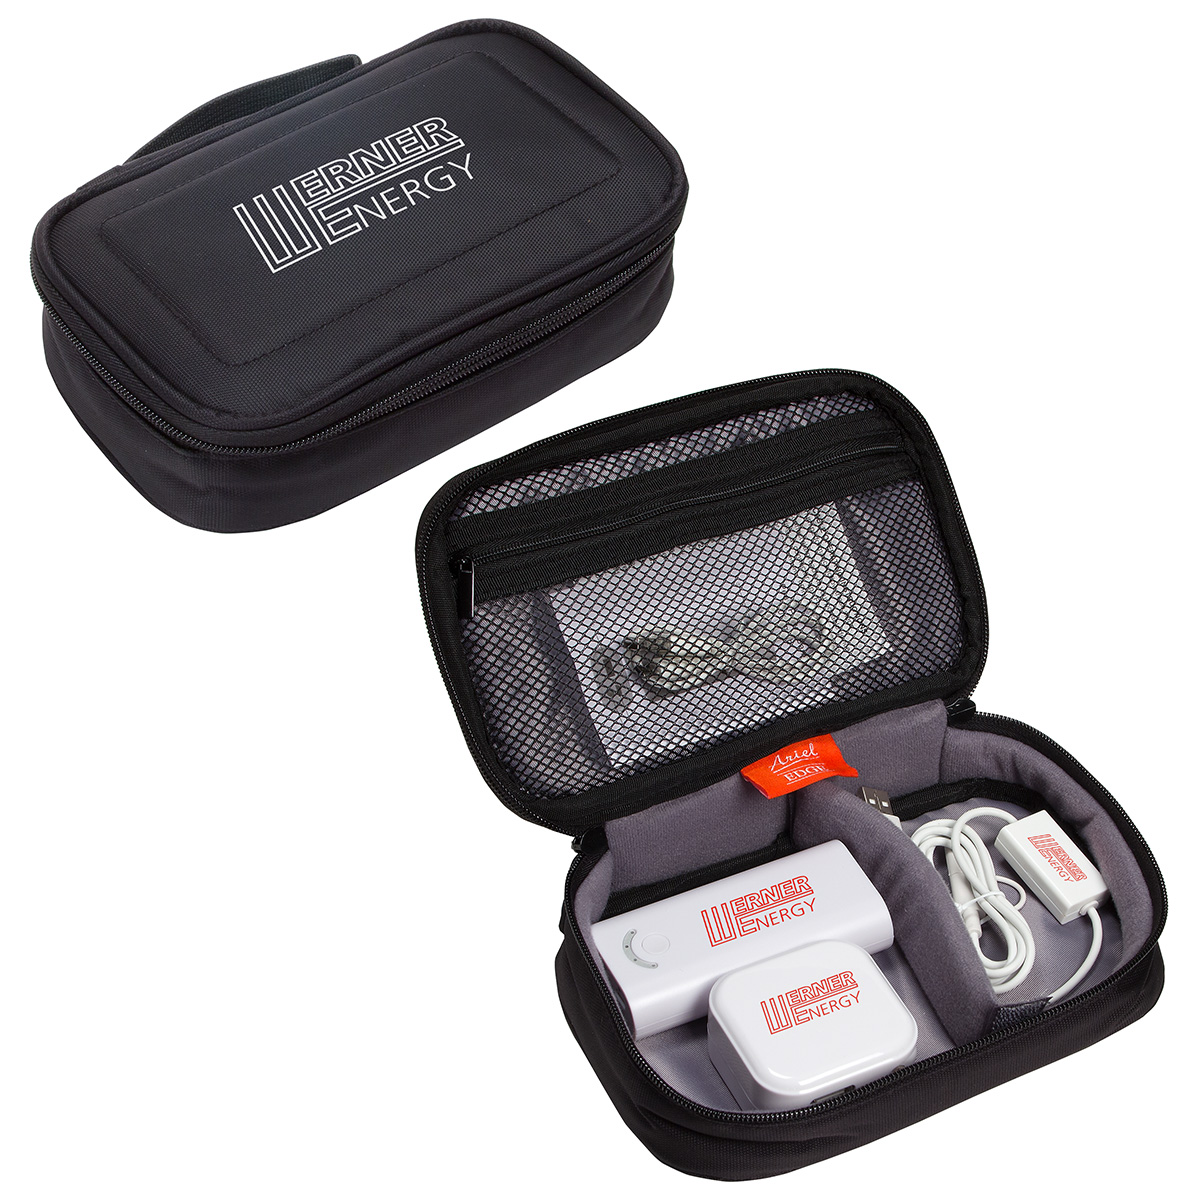 ChargerLeash Road Warrior Kit, ETK-CR16 - 1 Colour Imprint